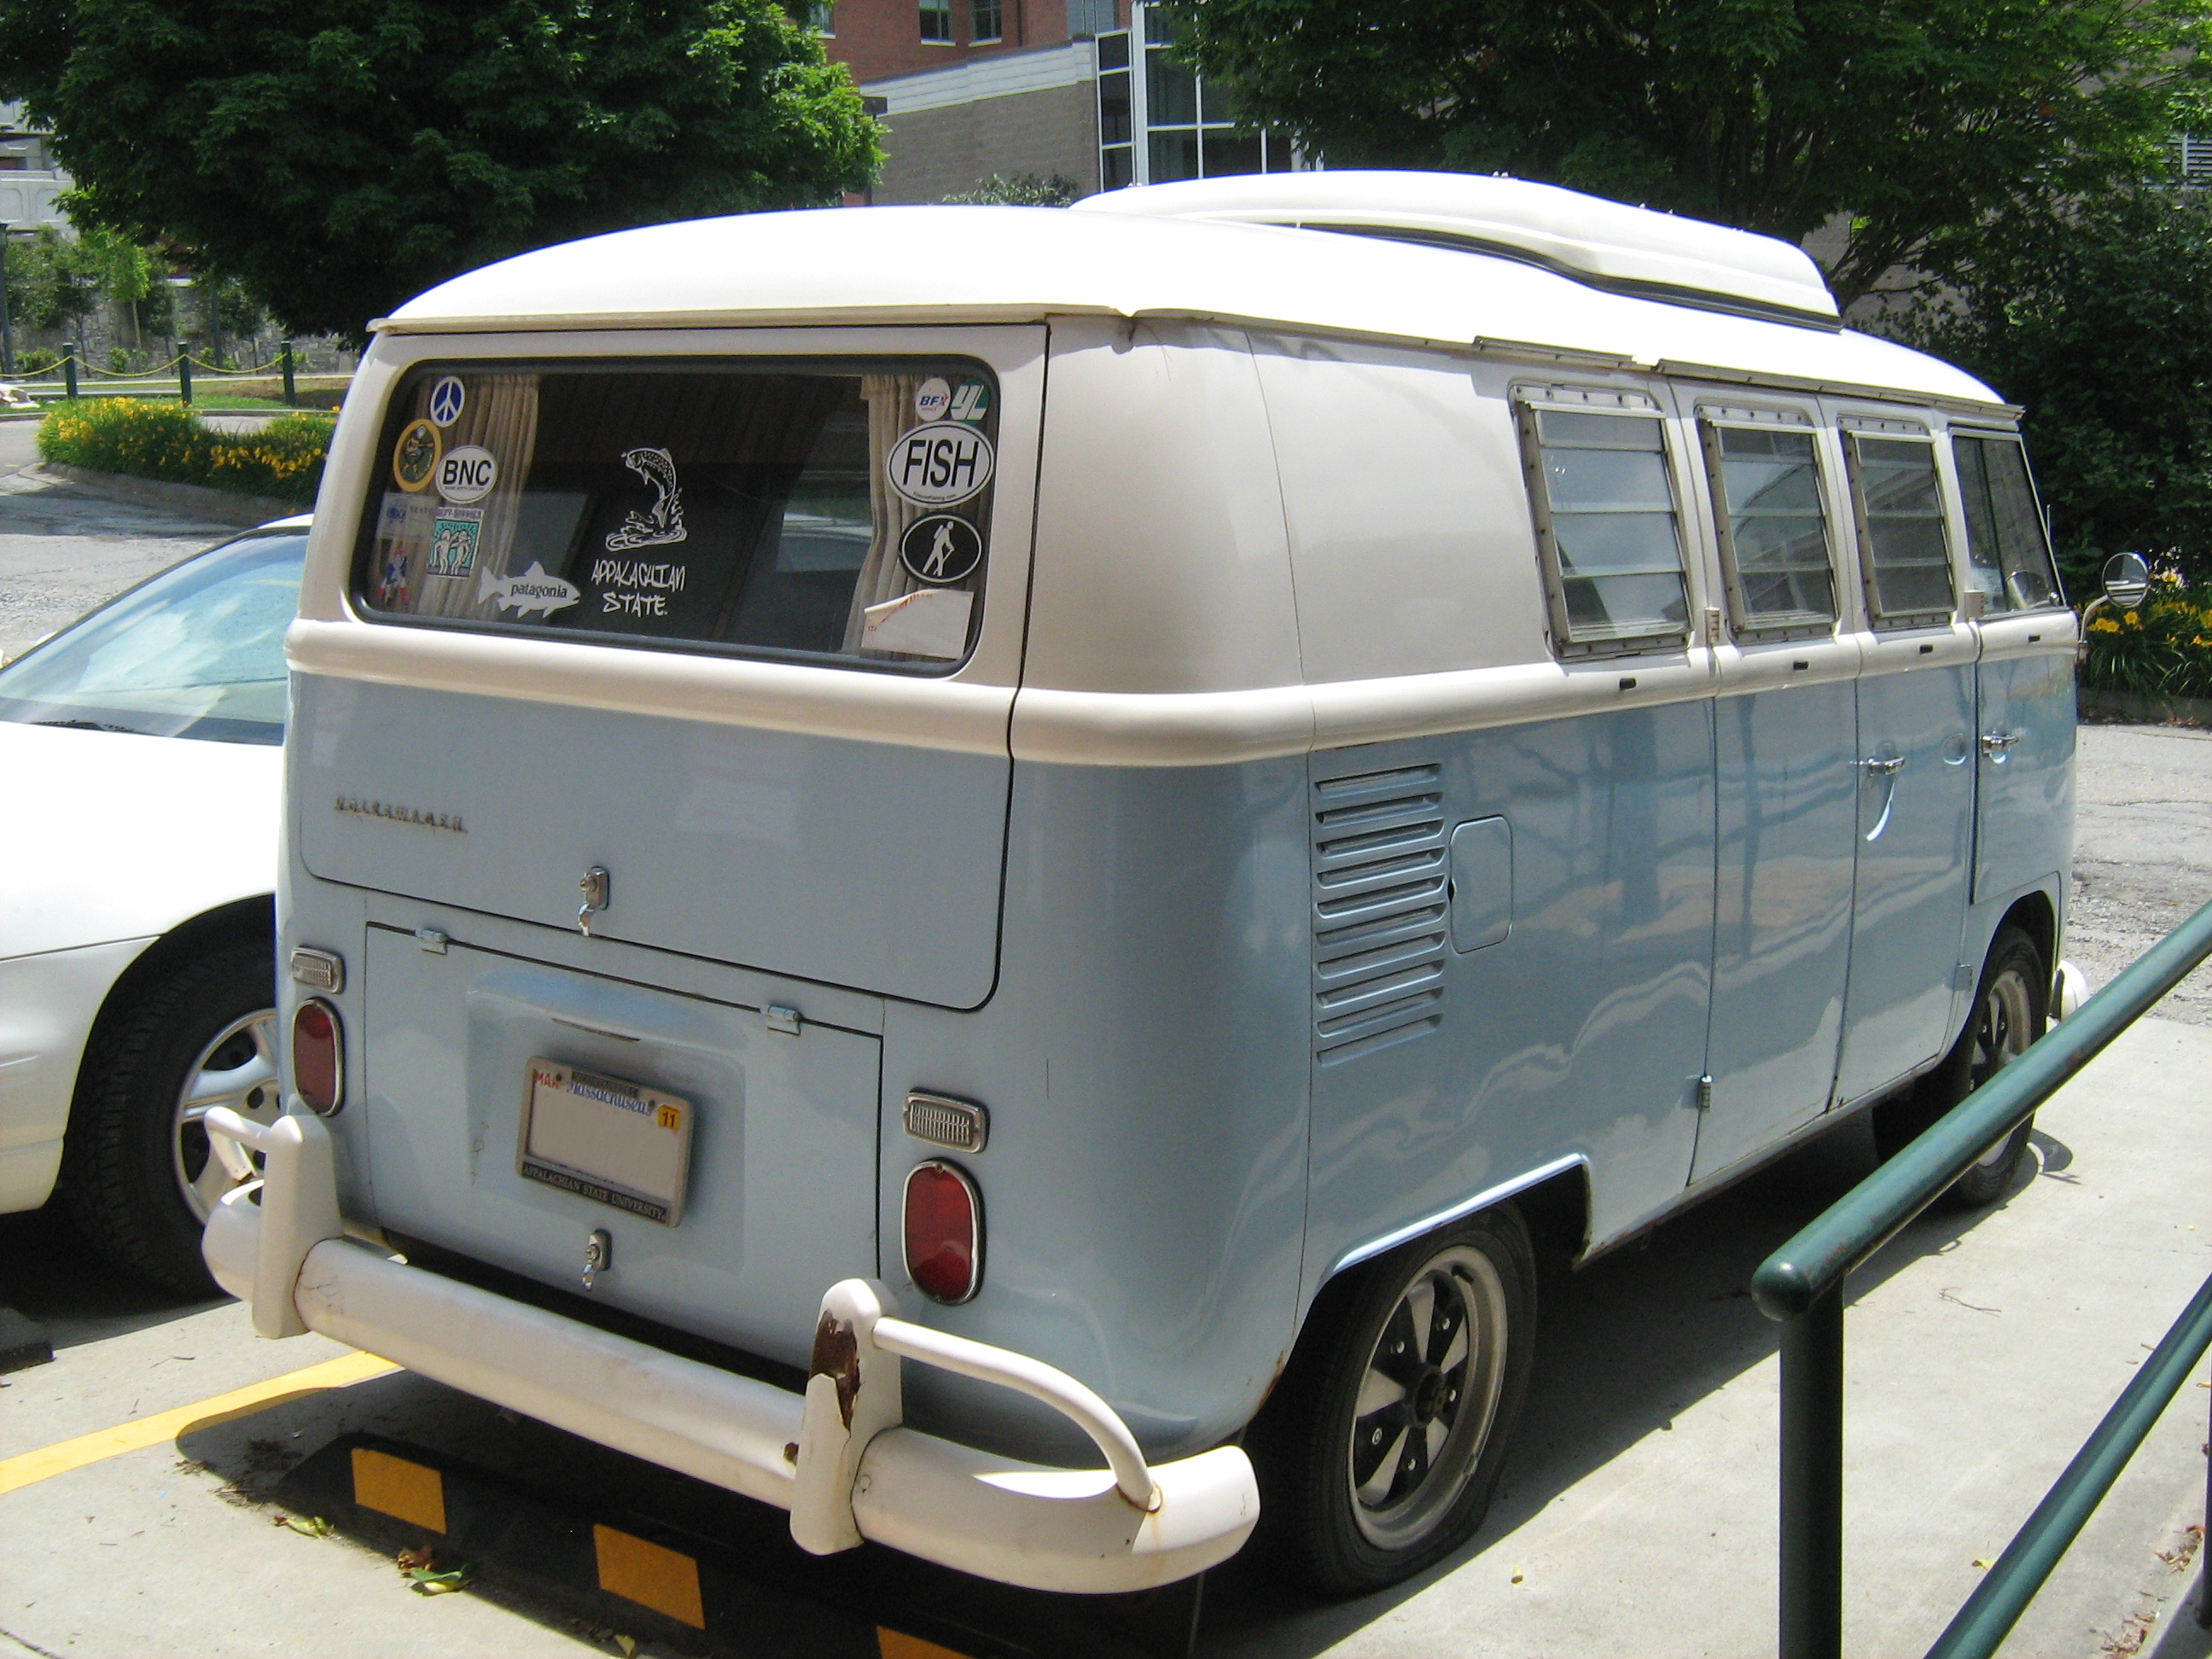 File Vw Camper Asu Blueandwhite Rr Jpg Wikimedia Commons